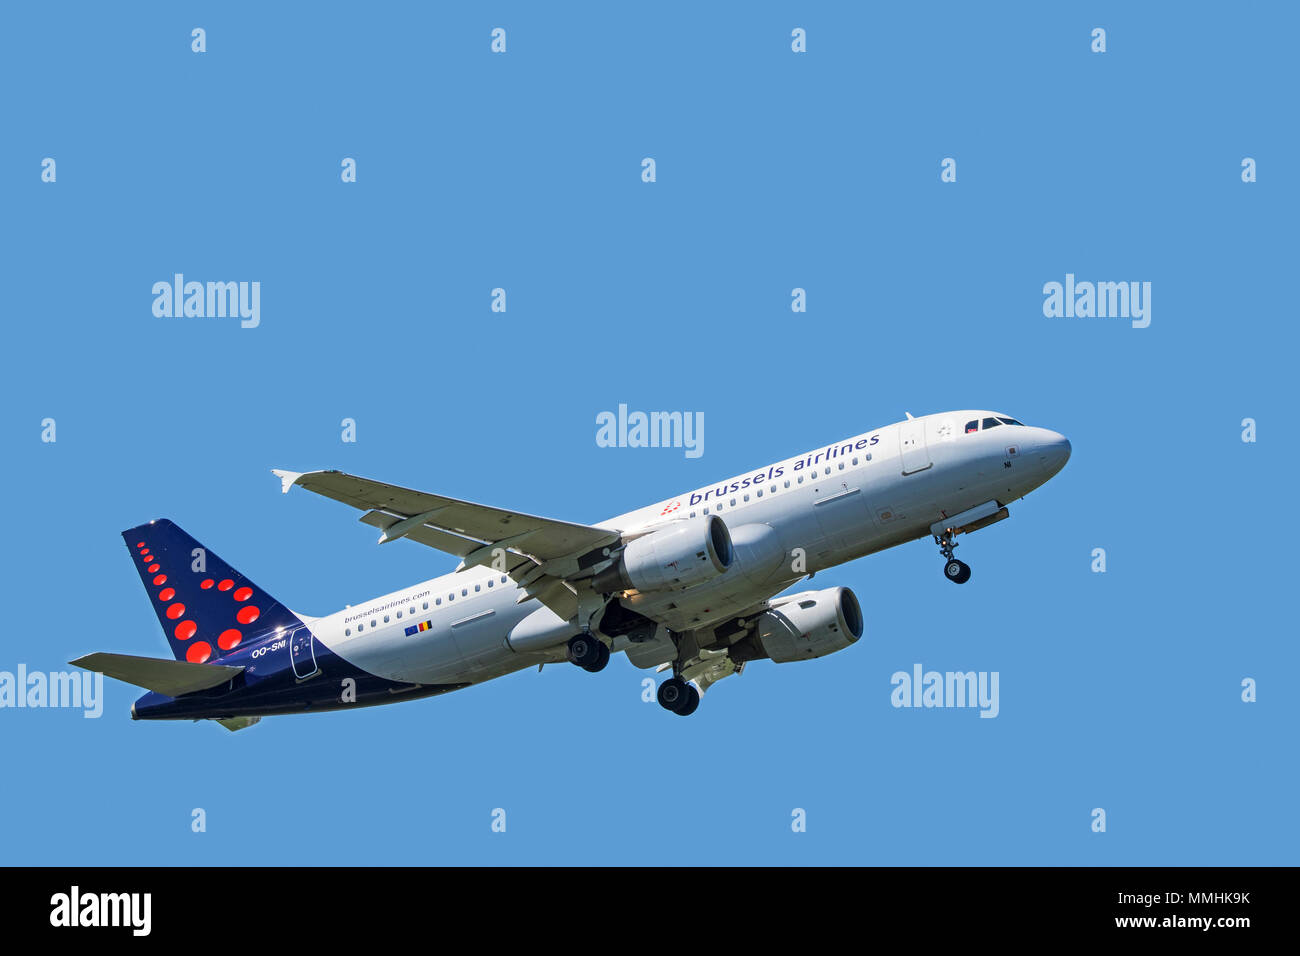 Airbus A320-214, narrow-body, commercial passenger twin-engine jet airliner from Belgian Brussels Airlines in flight against blue sky - Stock Image